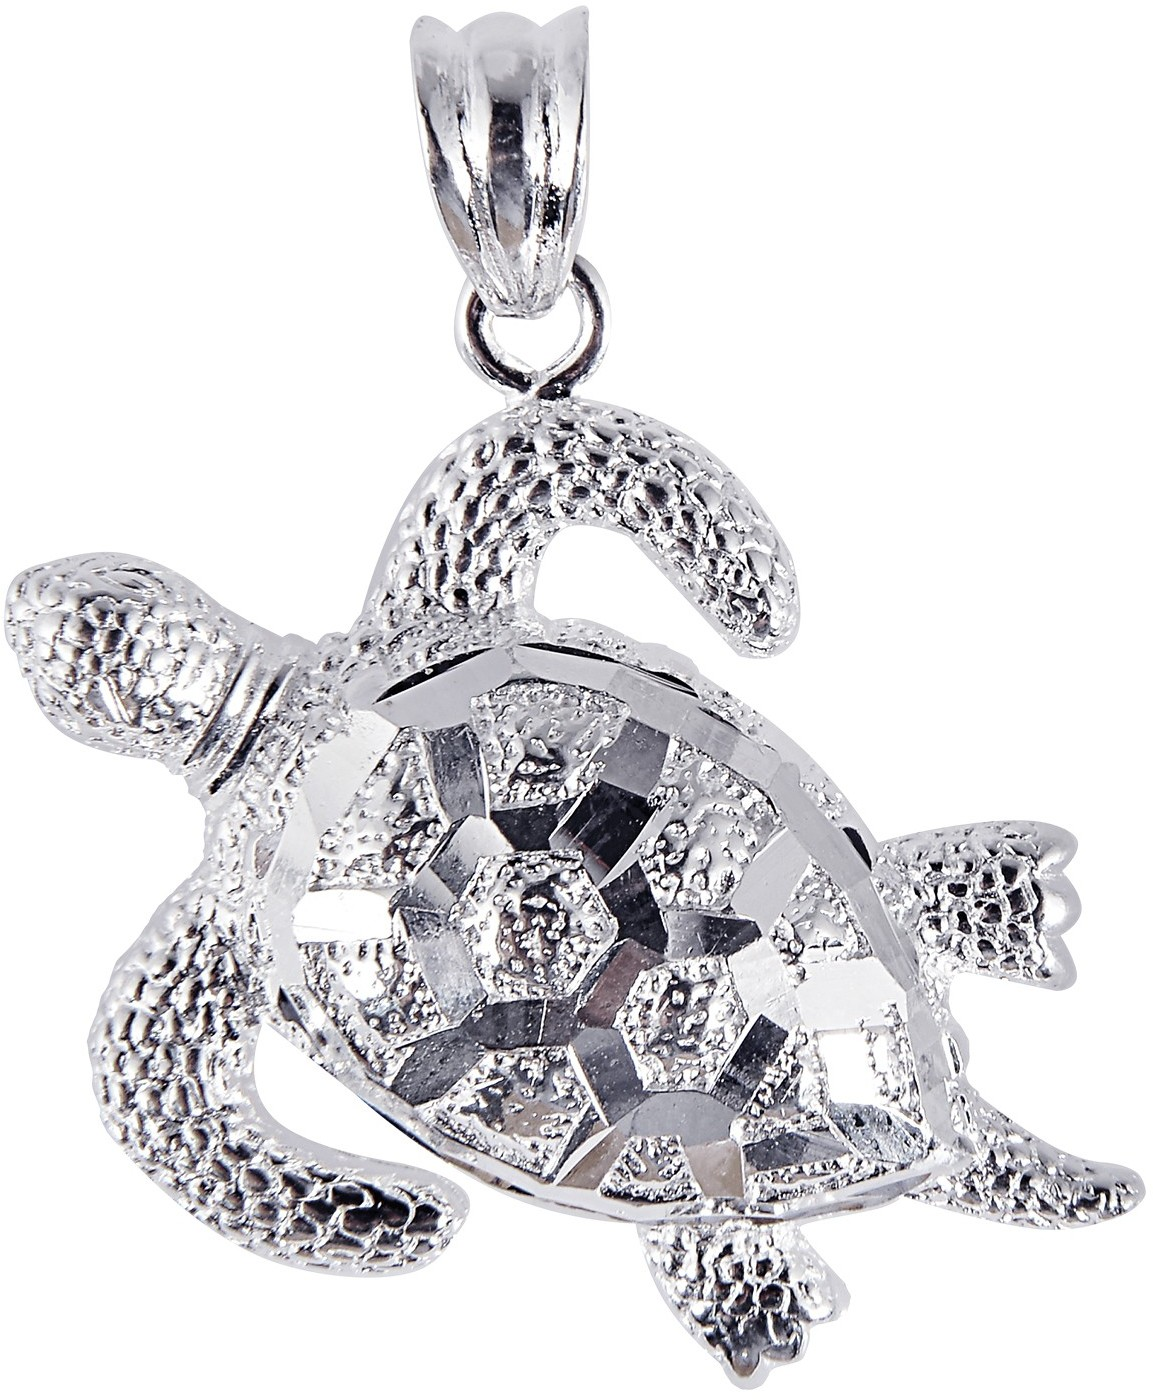 Silver Rhodium Plated Shiny Textured Turtle Sea Life Pendant (BTAGCH134)